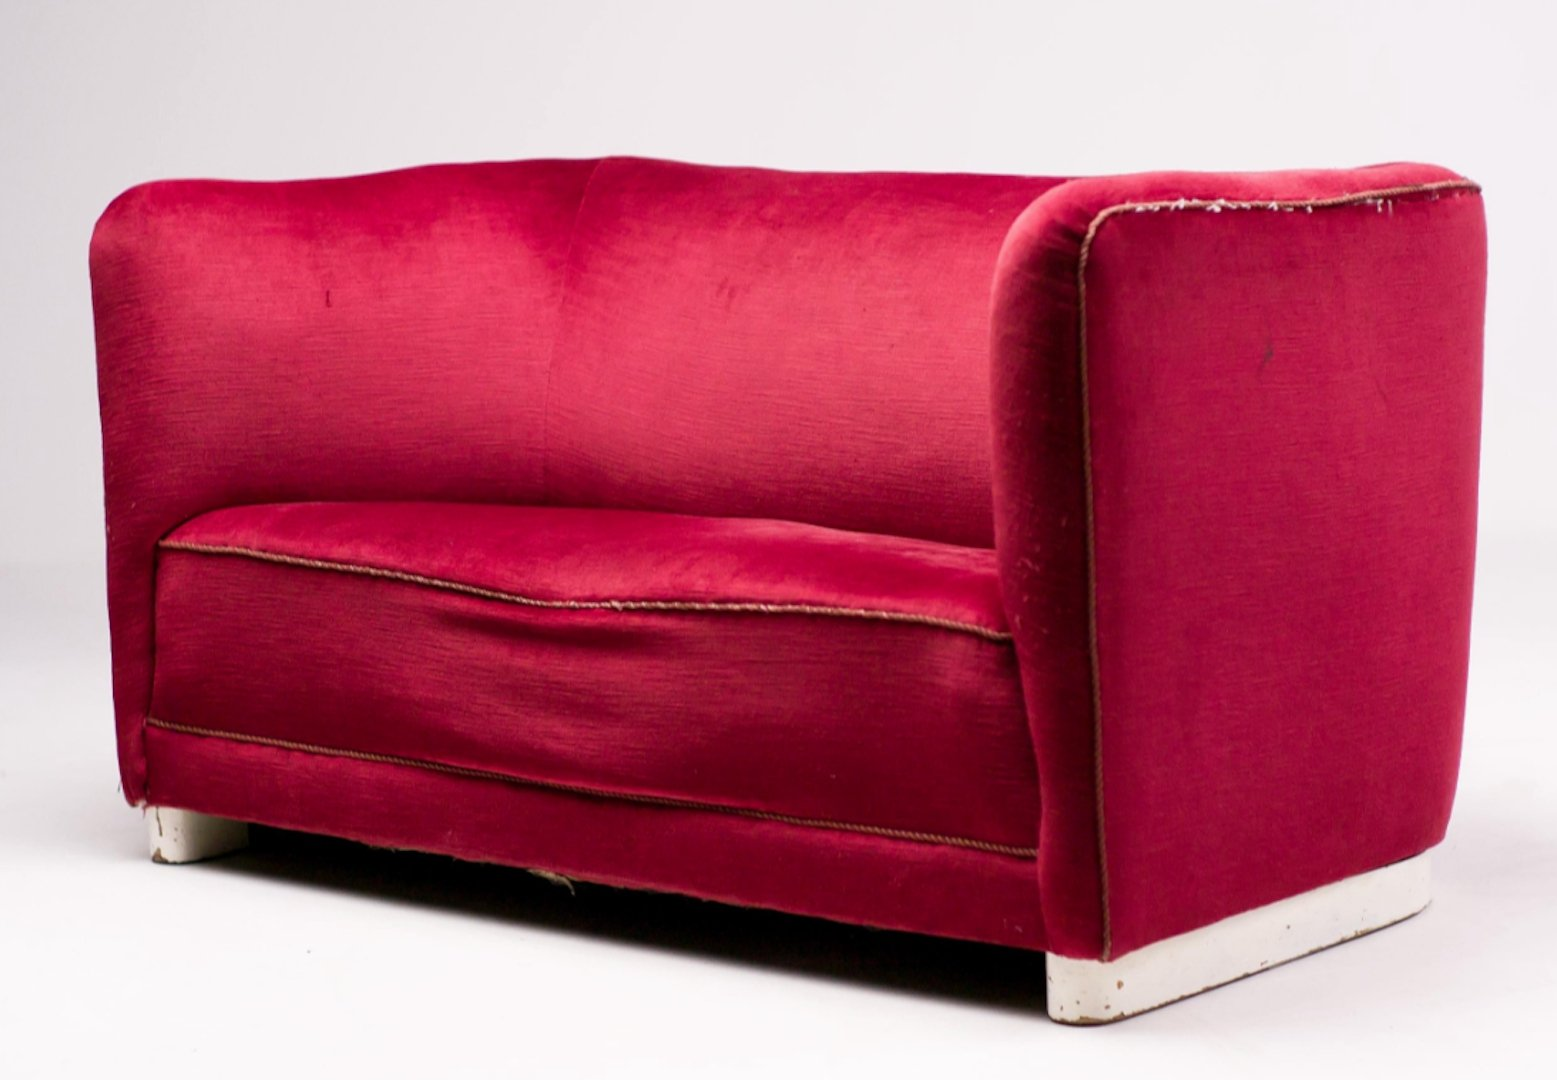 Remarkable Curved Sofa By Ole Wanscher For Fritz Hansen 1930S Dailytribune Chair Design For Home Dailytribuneorg